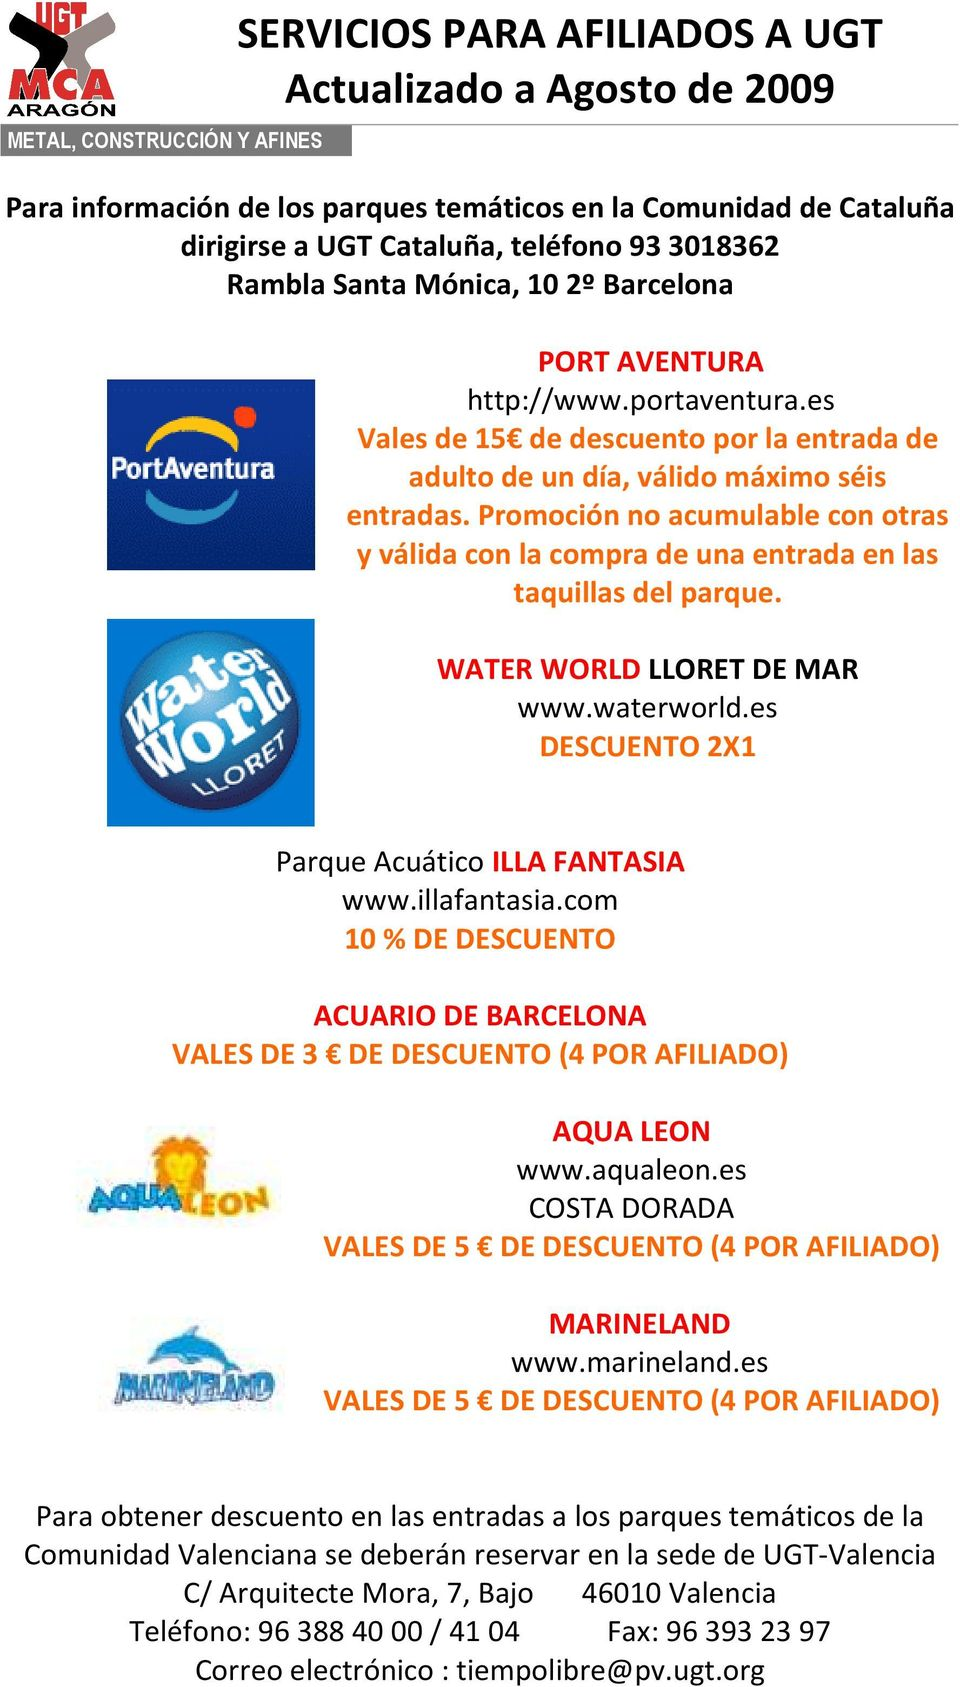 WATER WORLD LLORET DE MAR www.waterworld.es DESCUENTO 2X1 Parque Acuático ILLA FANTASIA www.illafantasia.